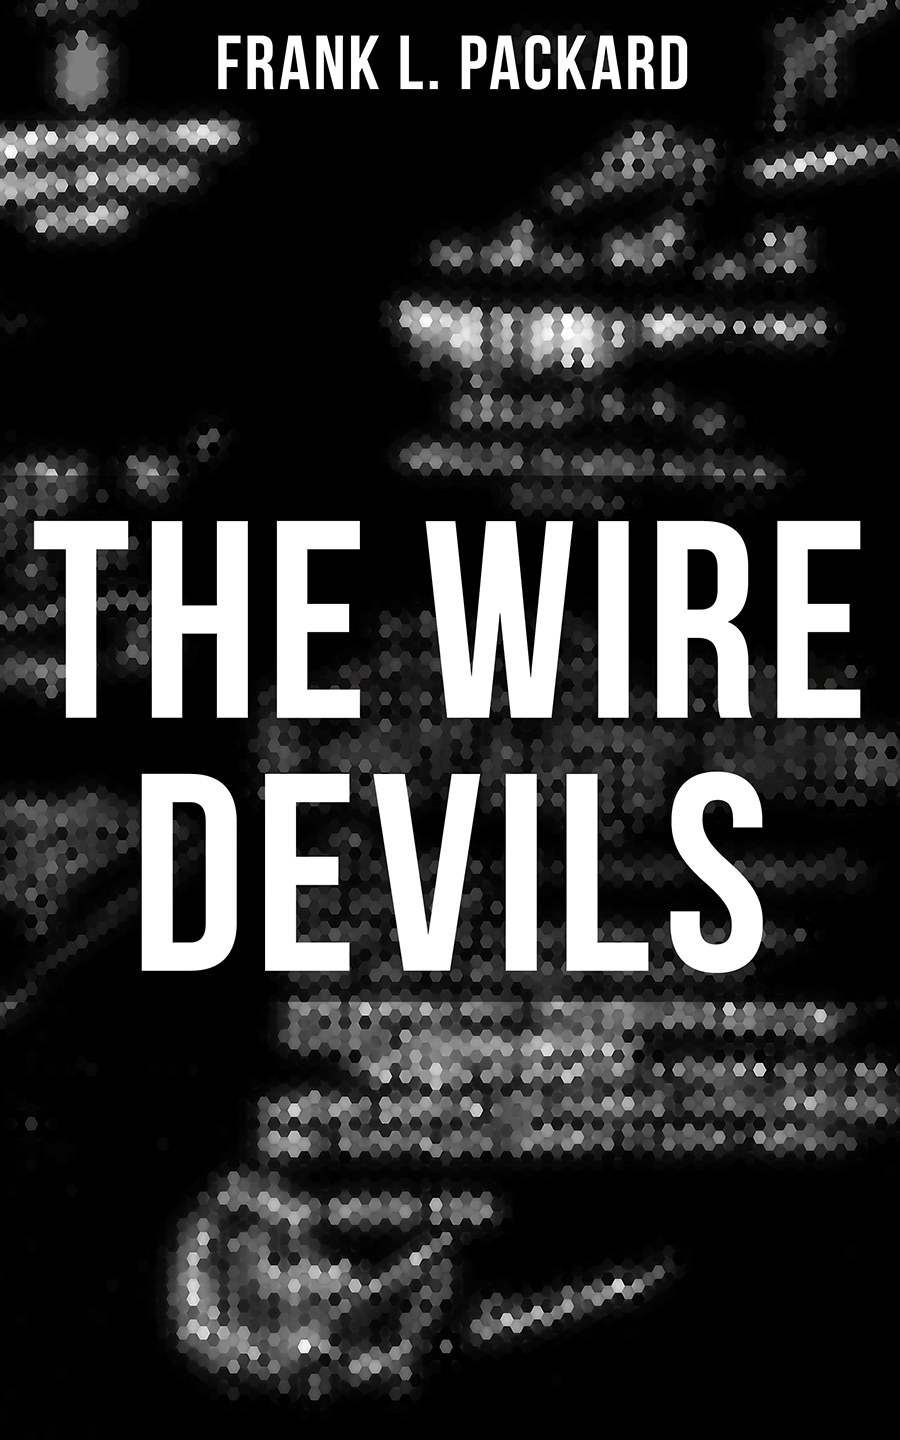 Frank L. Packard The Wire Devils